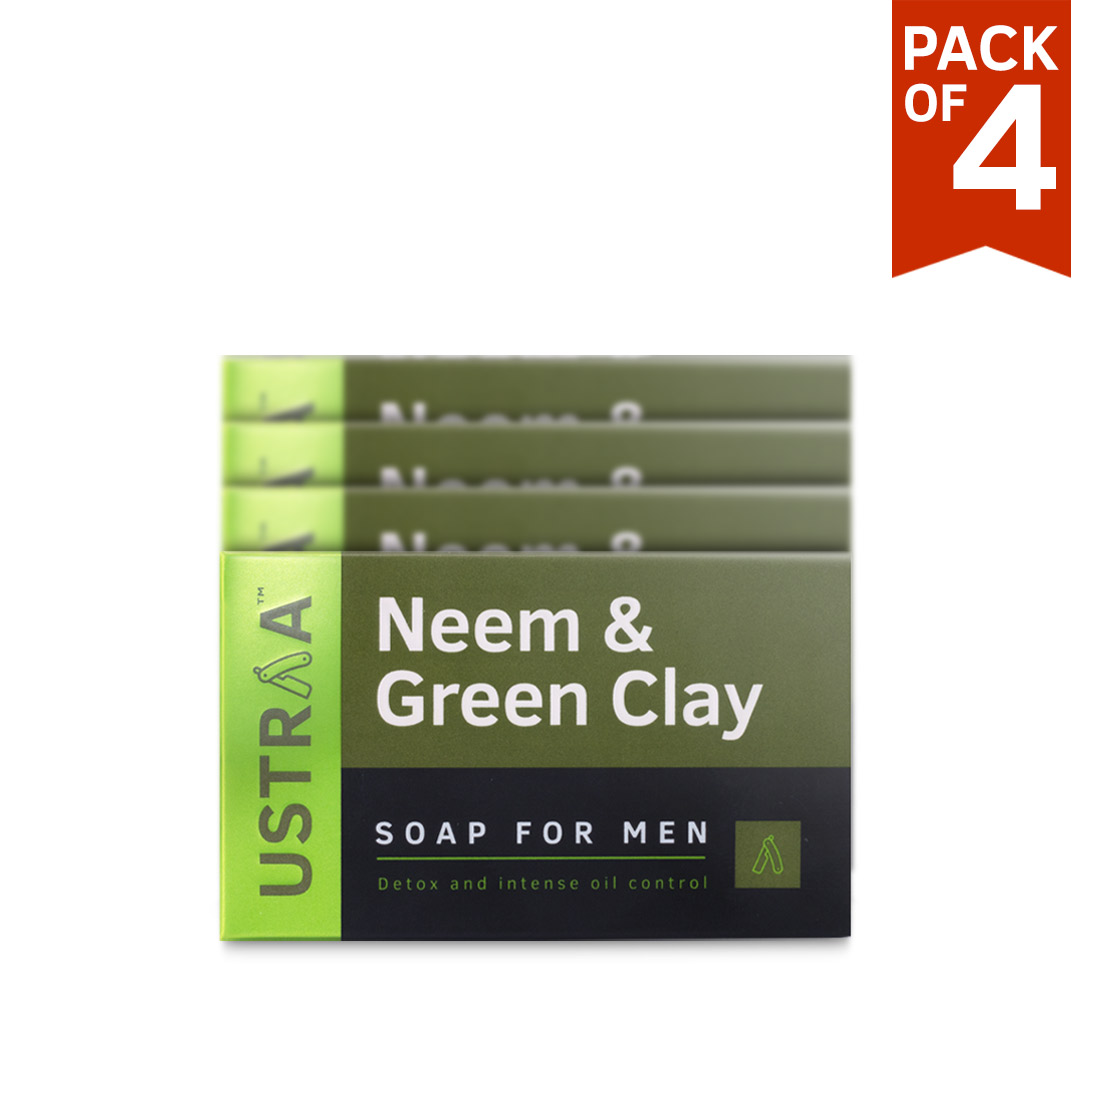 Neem & Green Clay Soap, 100 g (Pack of 4)